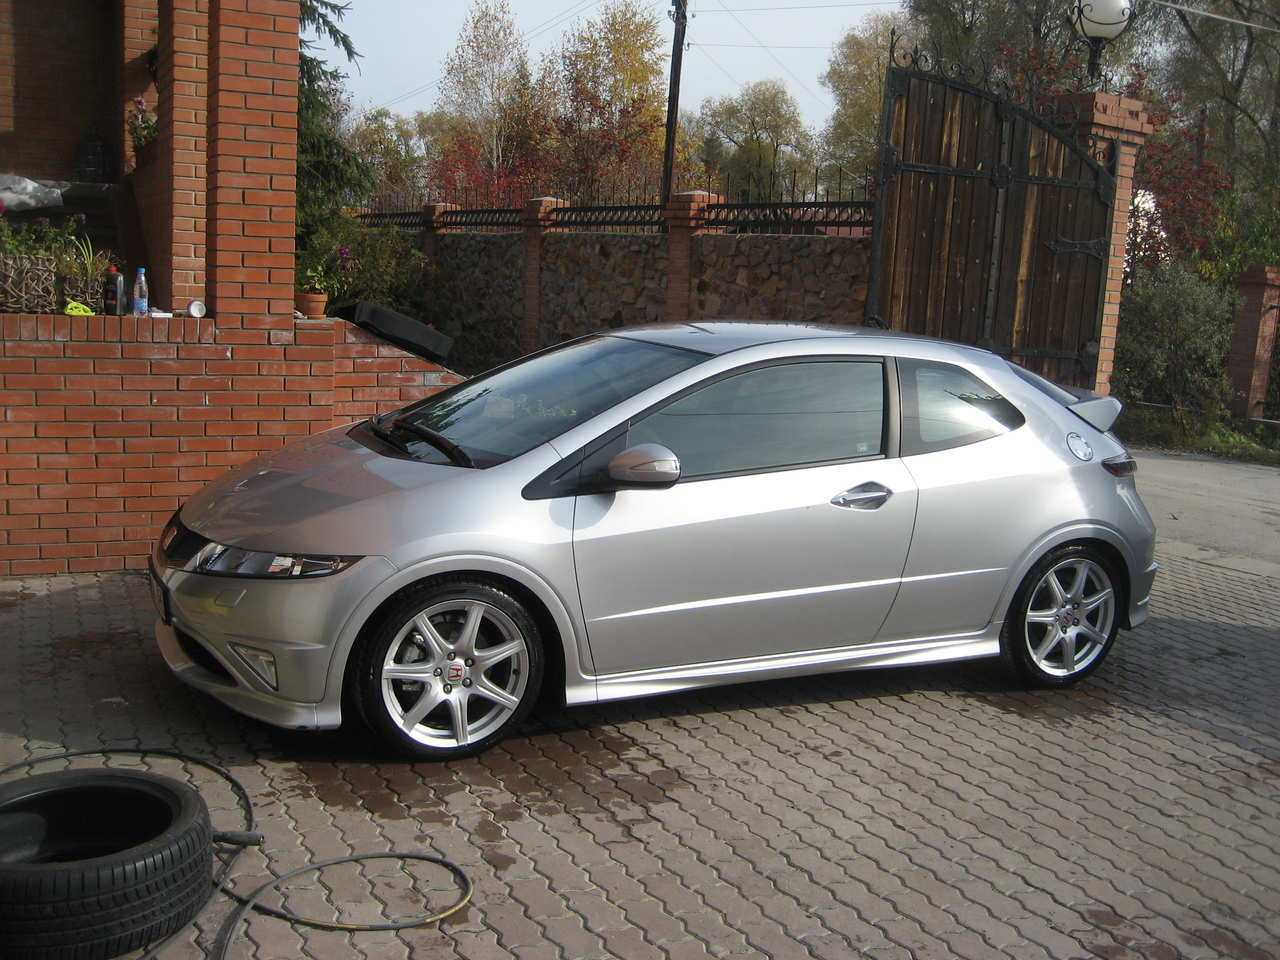 2008 honda civic type r images 1998cc gasoline ff manual for sale. Black Bedroom Furniture Sets. Home Design Ideas